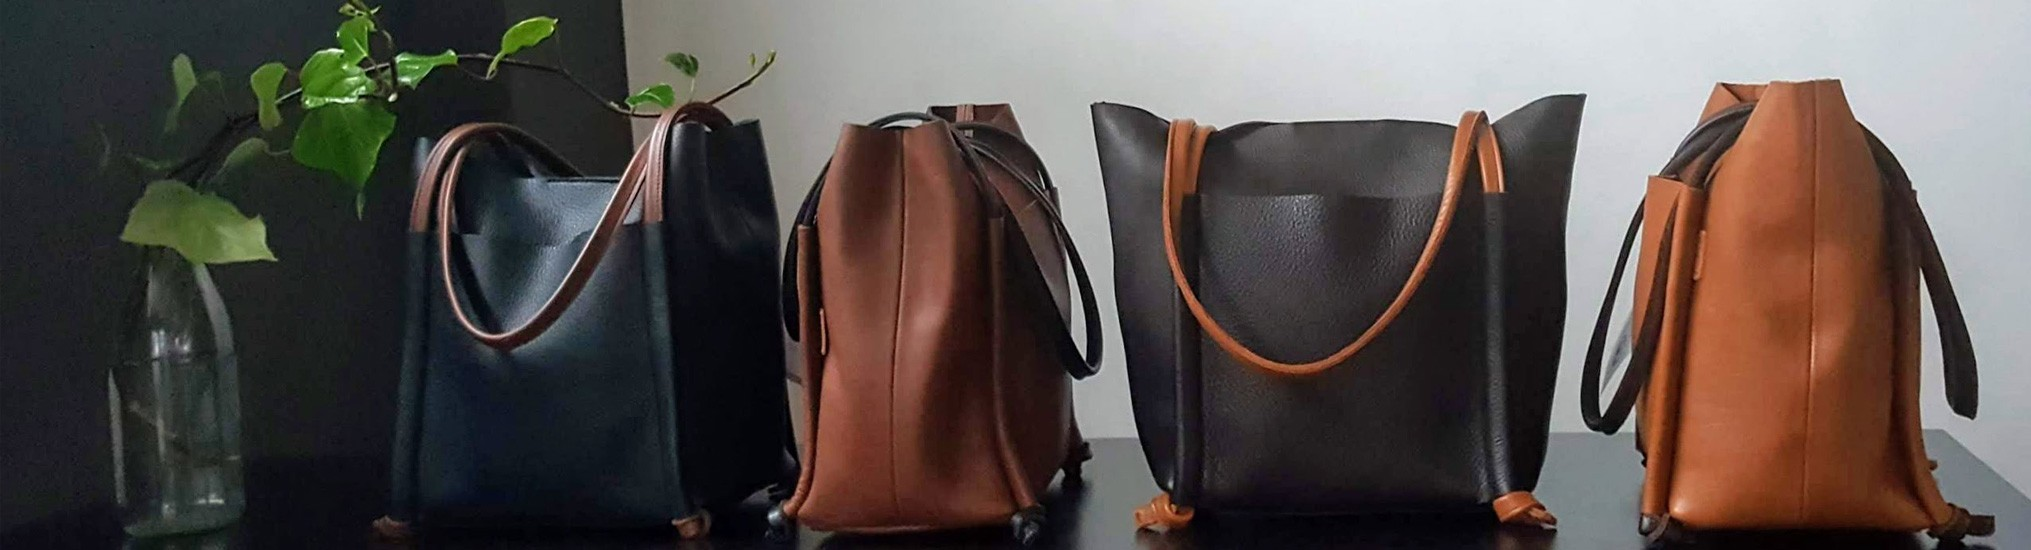 Corzo leather handicraft